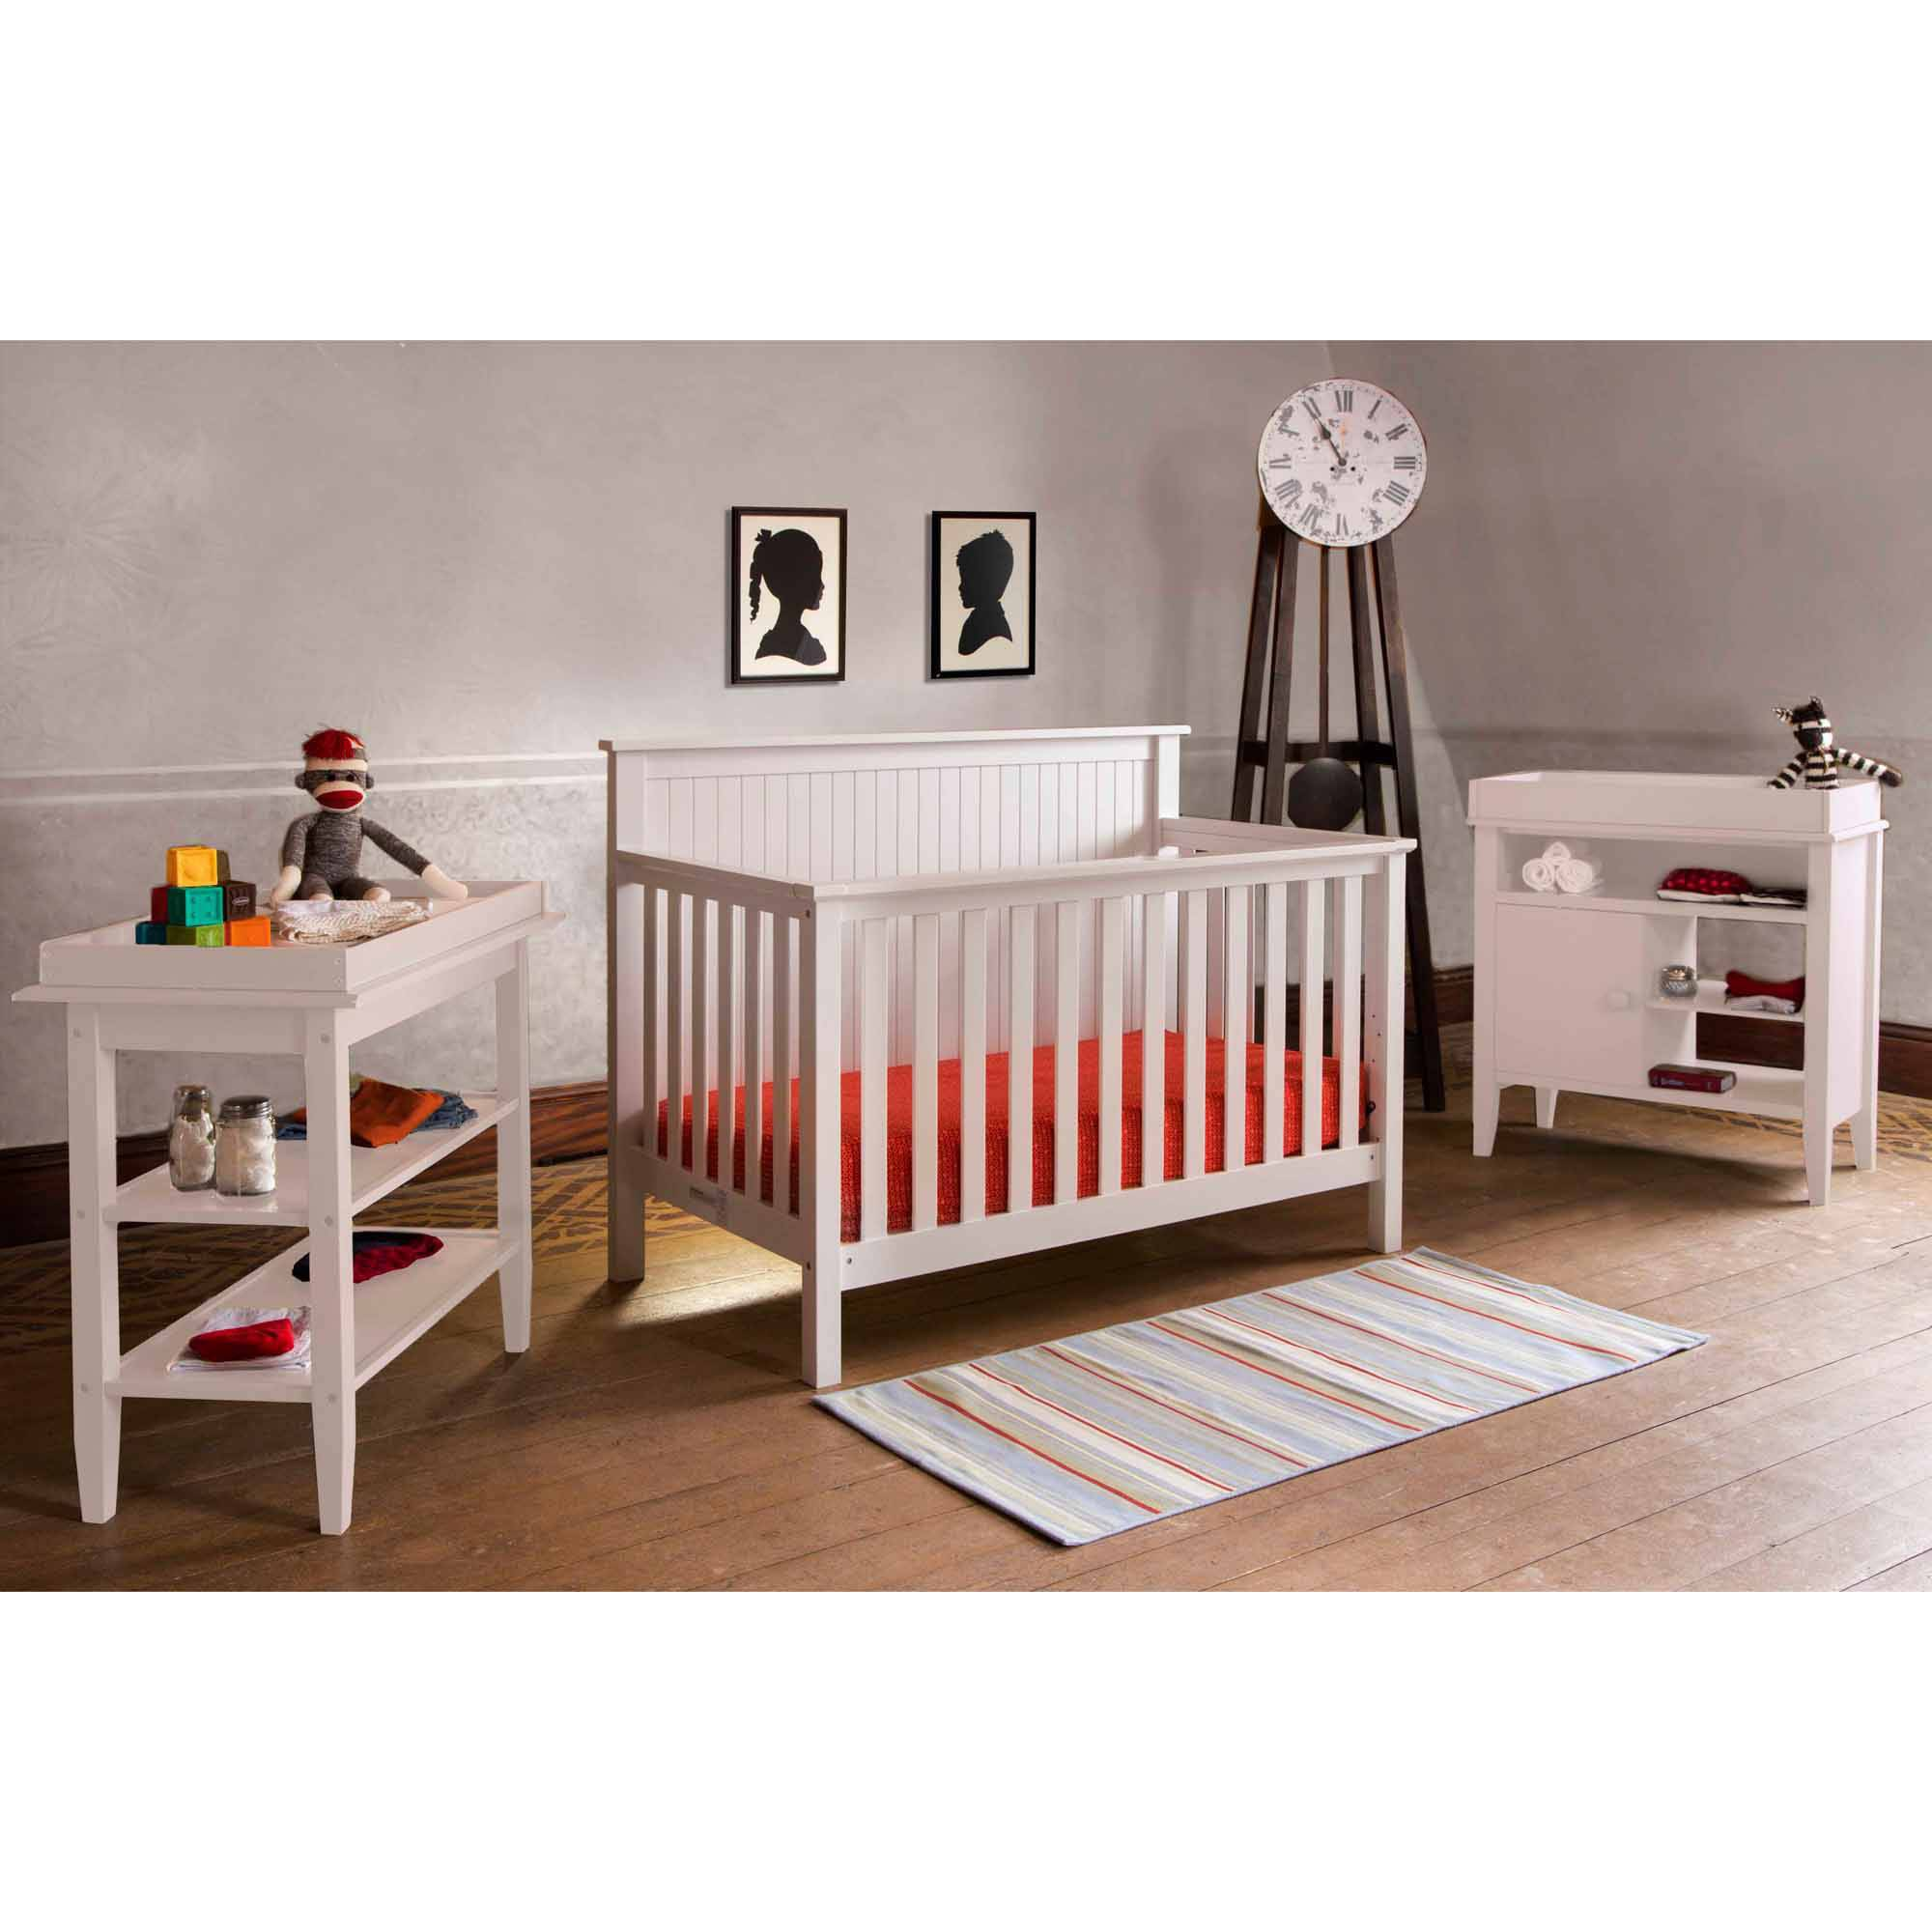 Lolly and Me Americana 4-in-1 Fixed-Side Convertible Crib, White